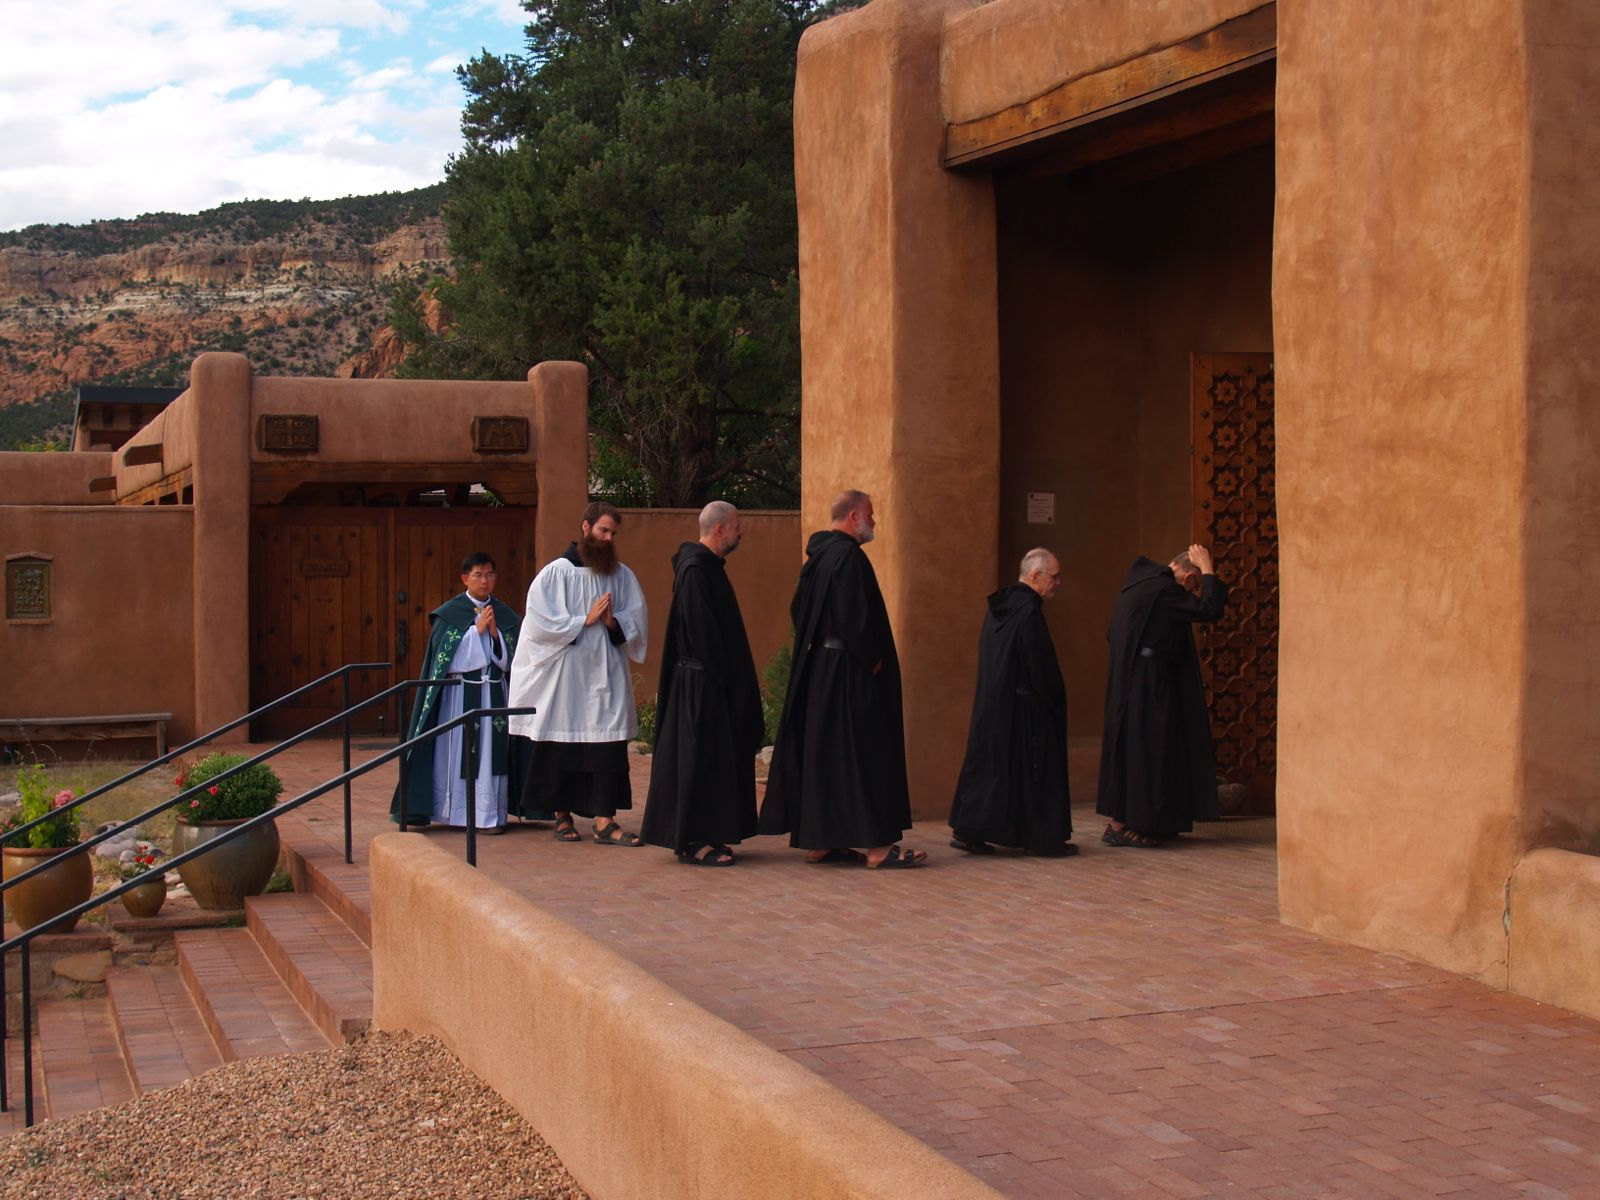 Procession for Vespers and Benediction